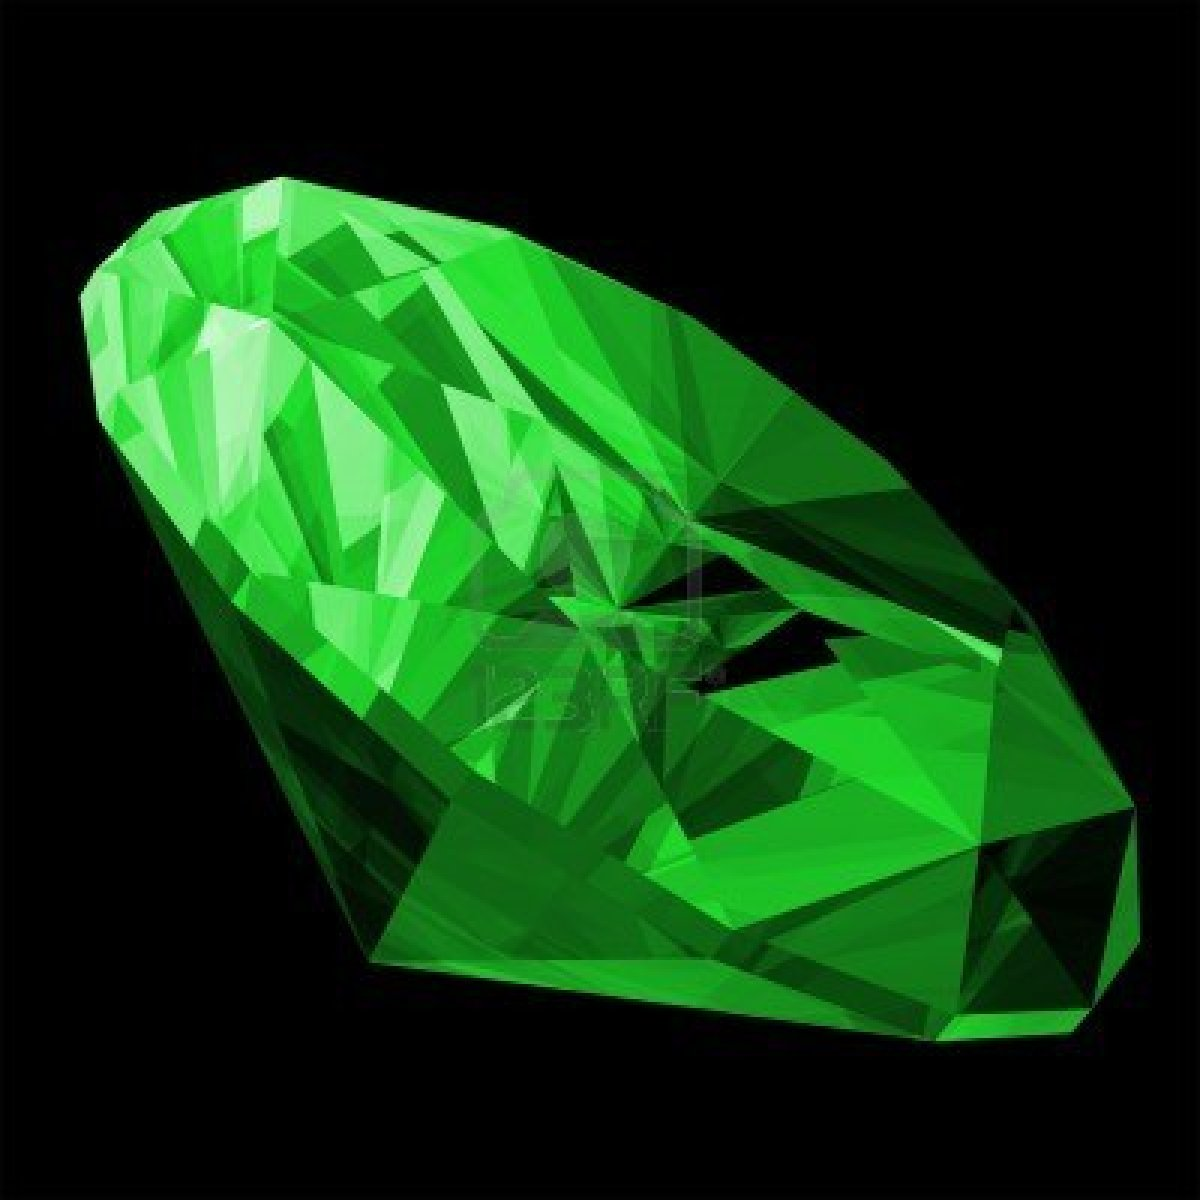 Emerald is regarded as the traditional birthstone for May, as well as the traditional gemstone for the astrological signs of Taurus, Gemini and sometimes Cancer. Astrologers also consider emerald a gem of the planets Mercury, Venus and Jupiter.